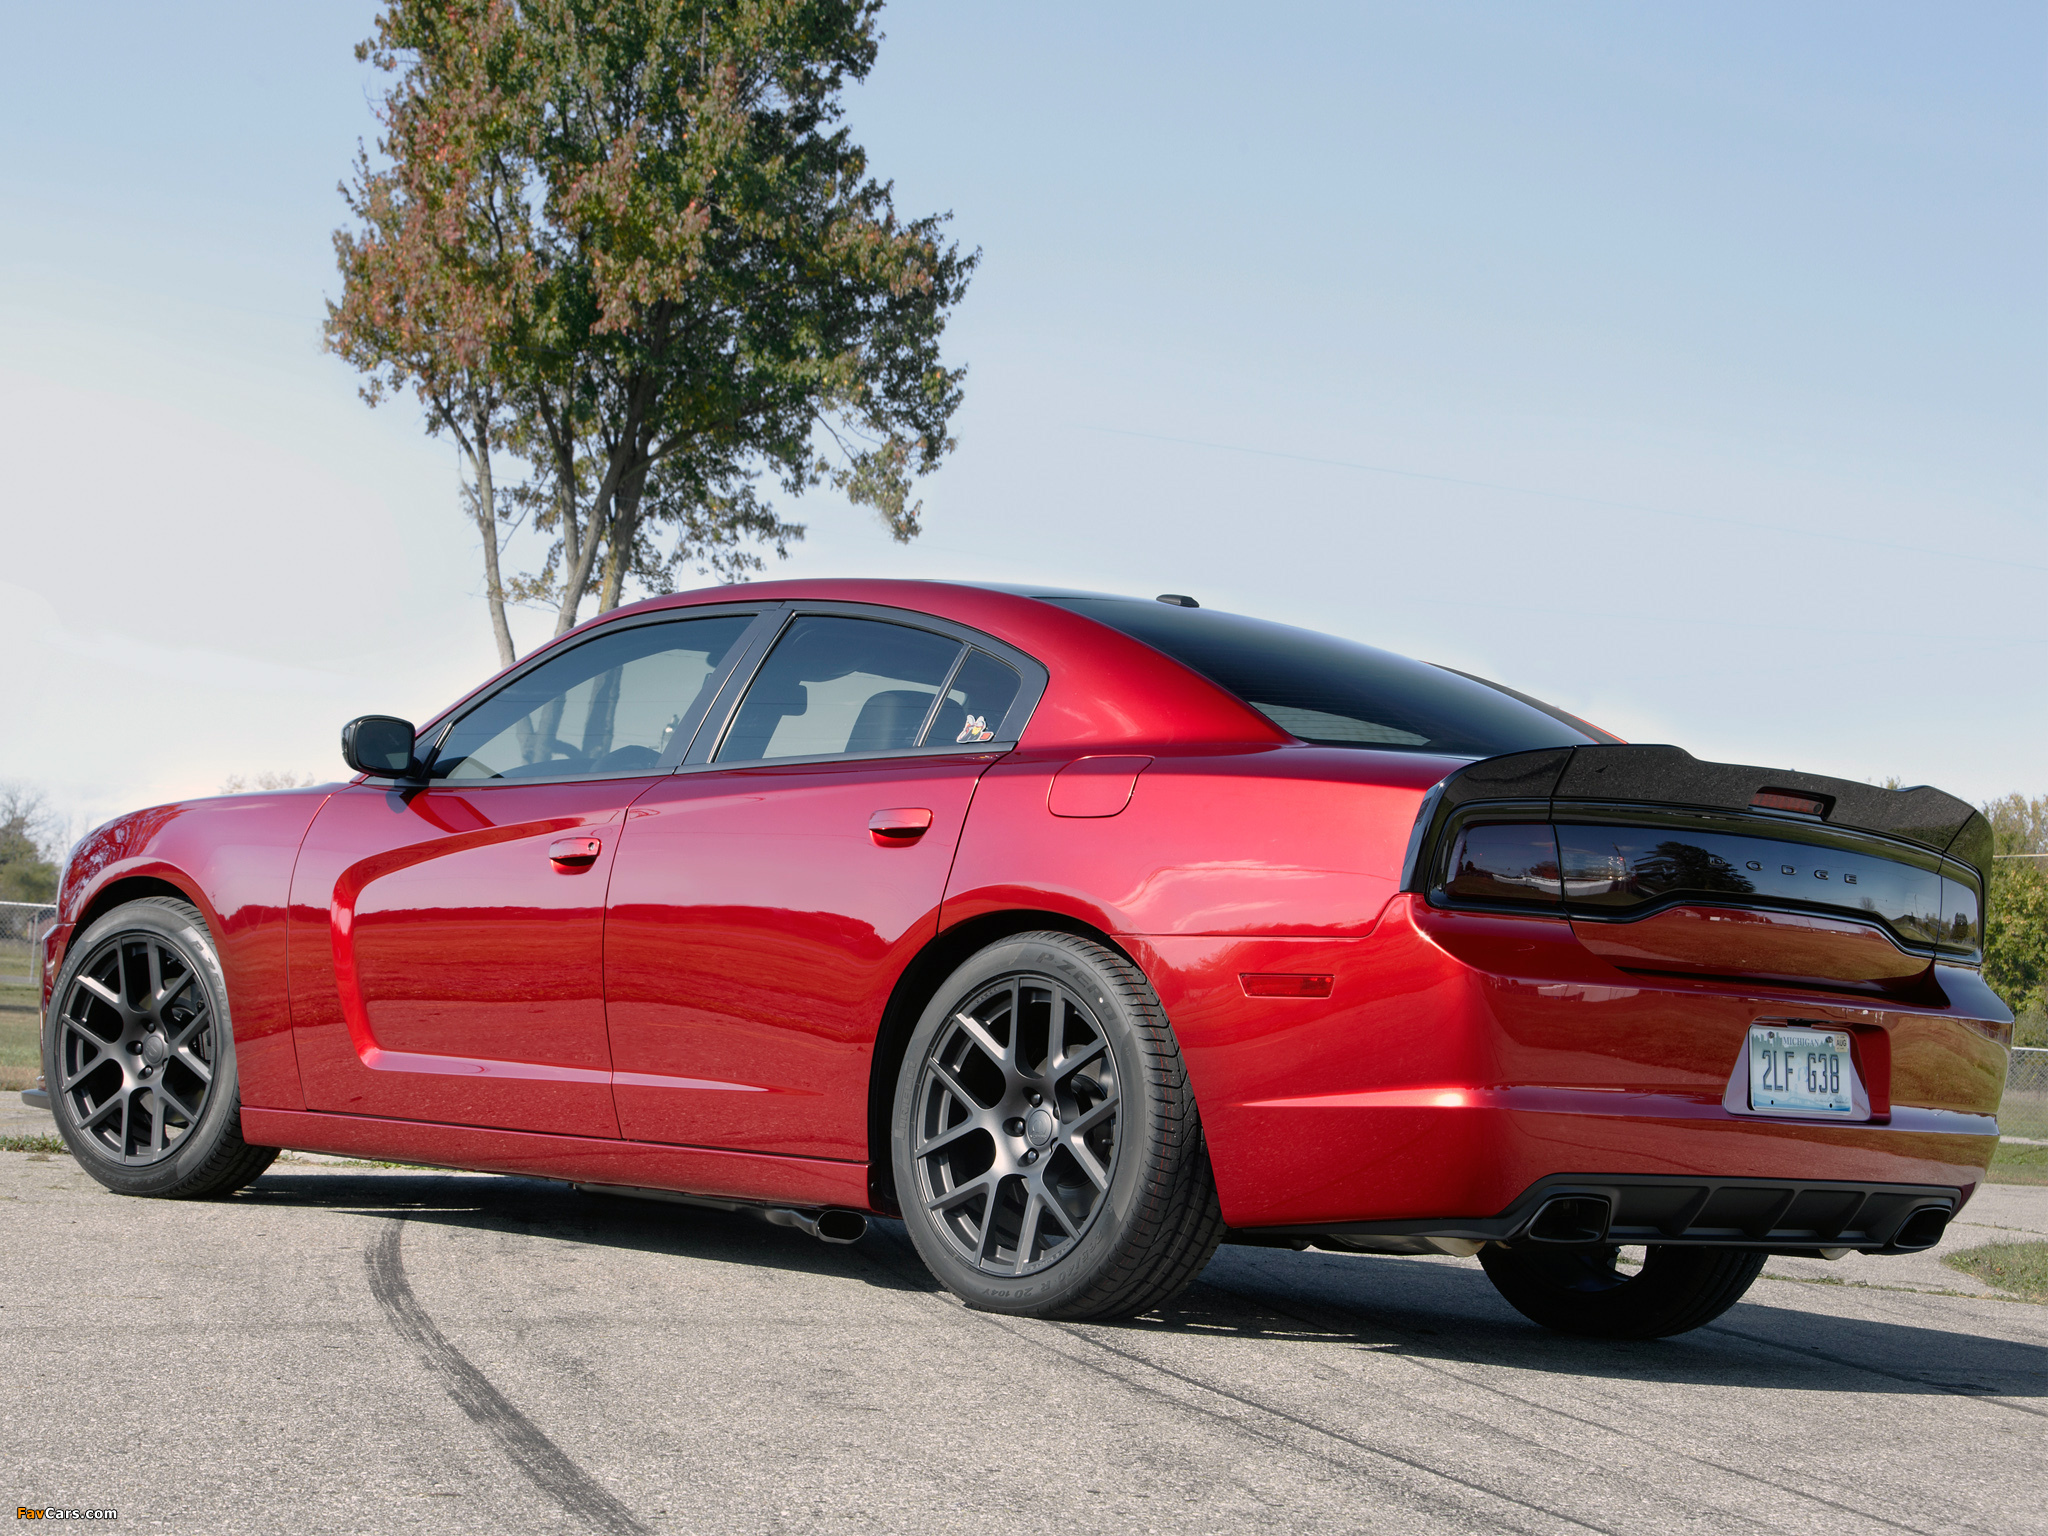 Dodge Charger R/T Scat Package 3 2014 photos (2048 x 1536)